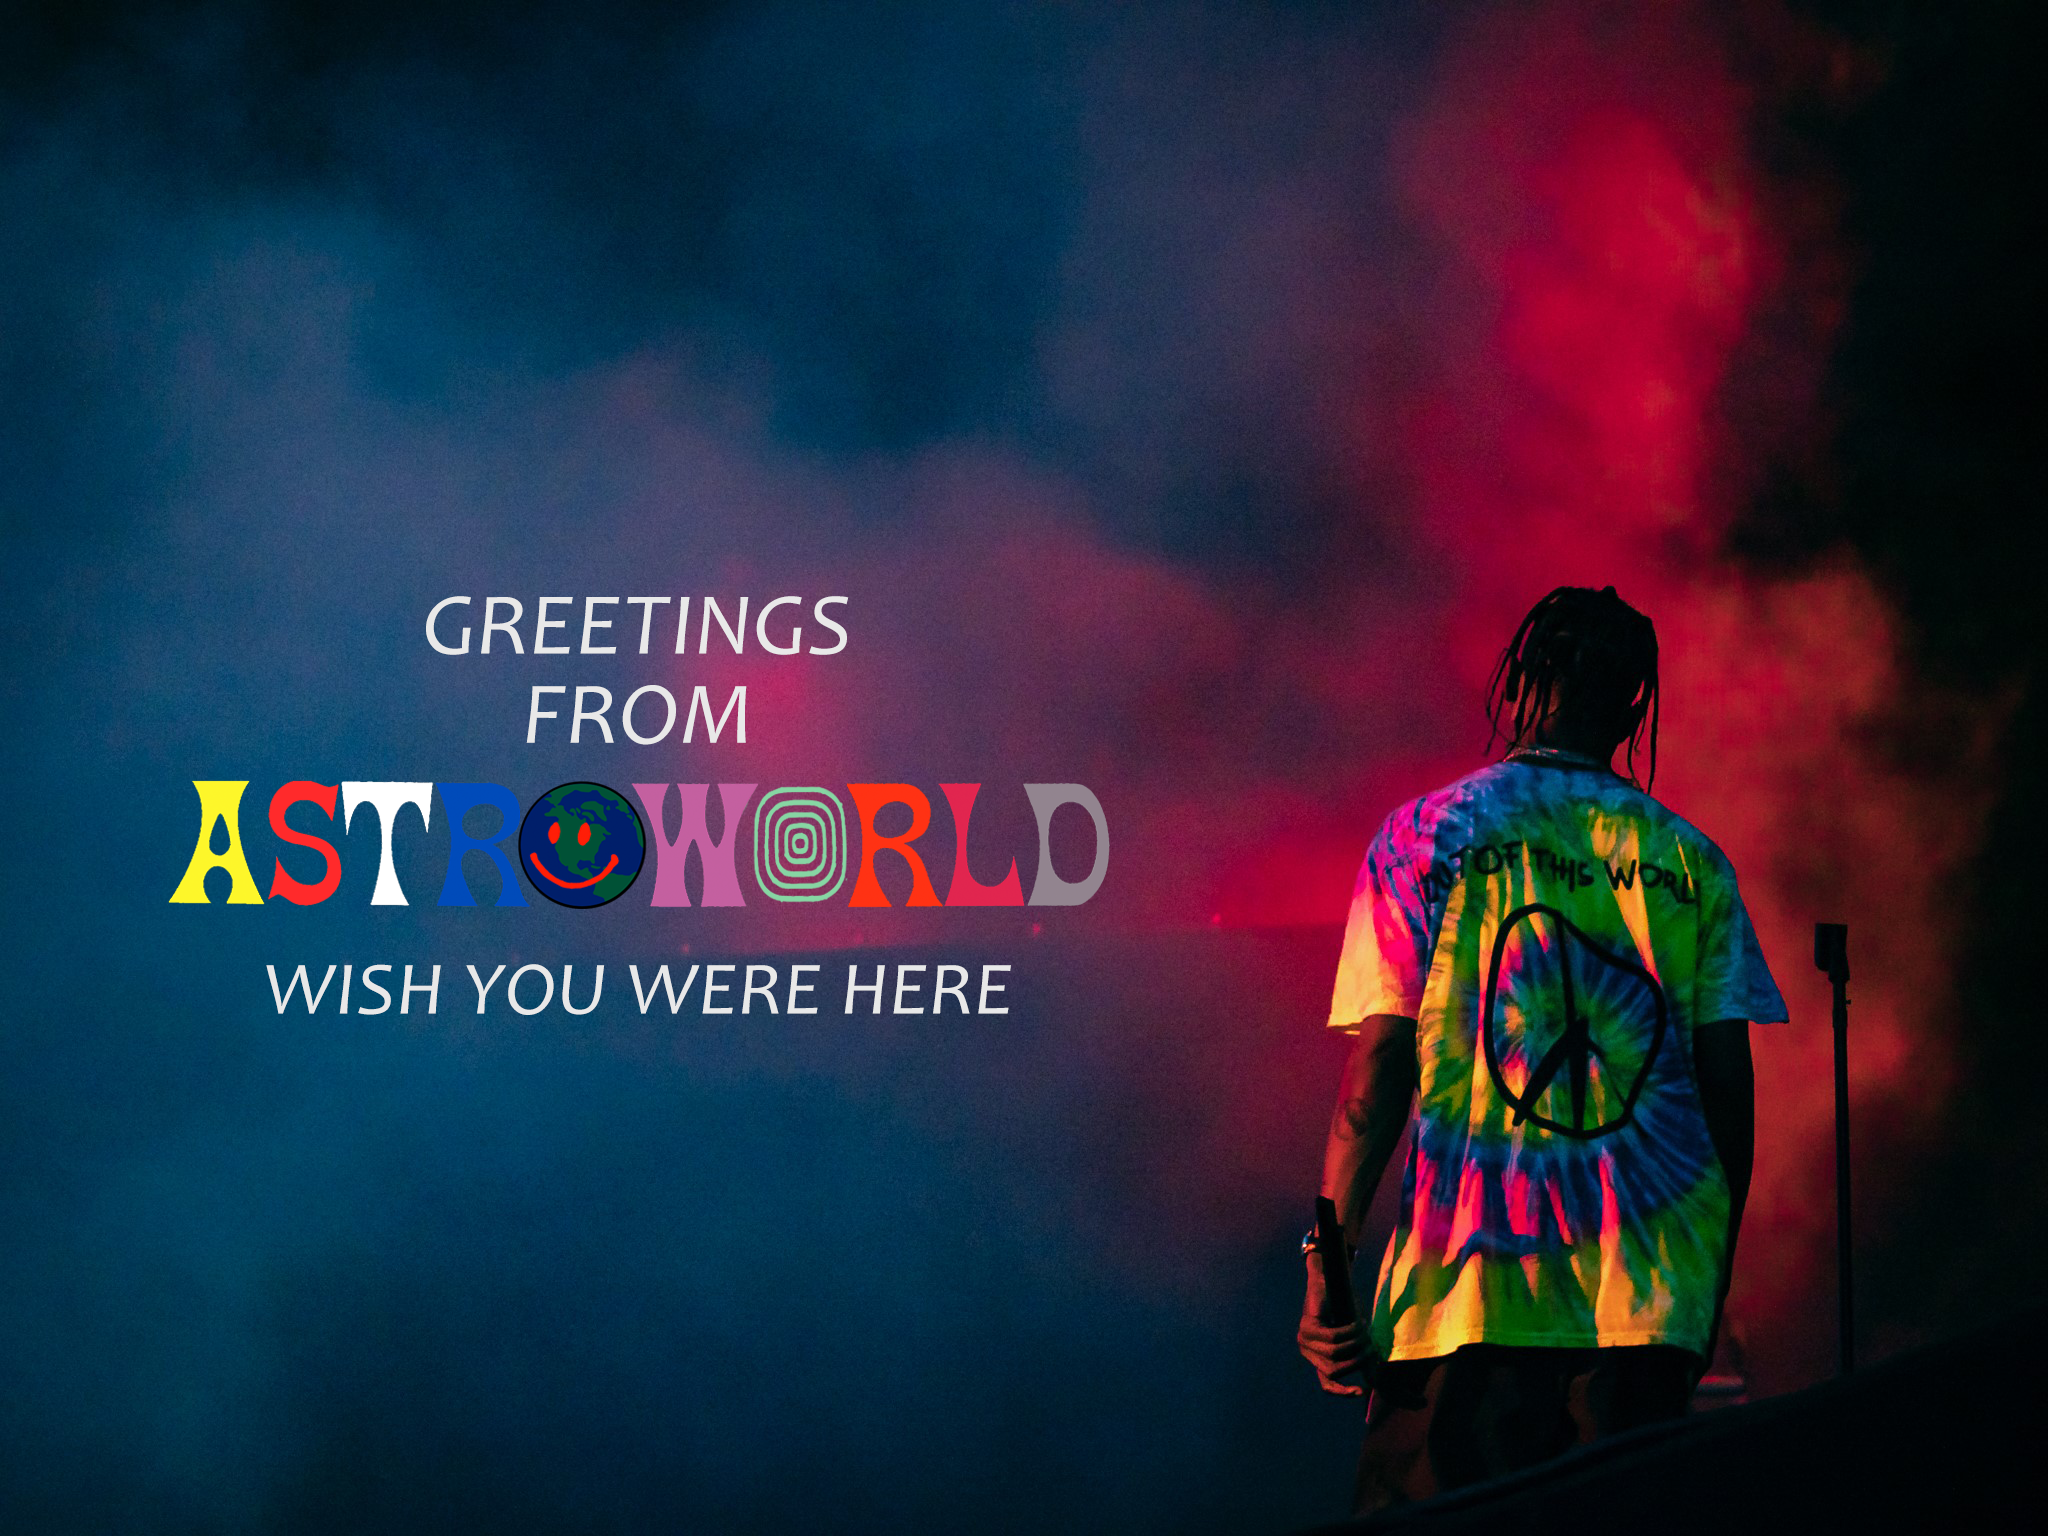 Astroworld Travis Scott Wallpaper Posted By Samantha Tremblay